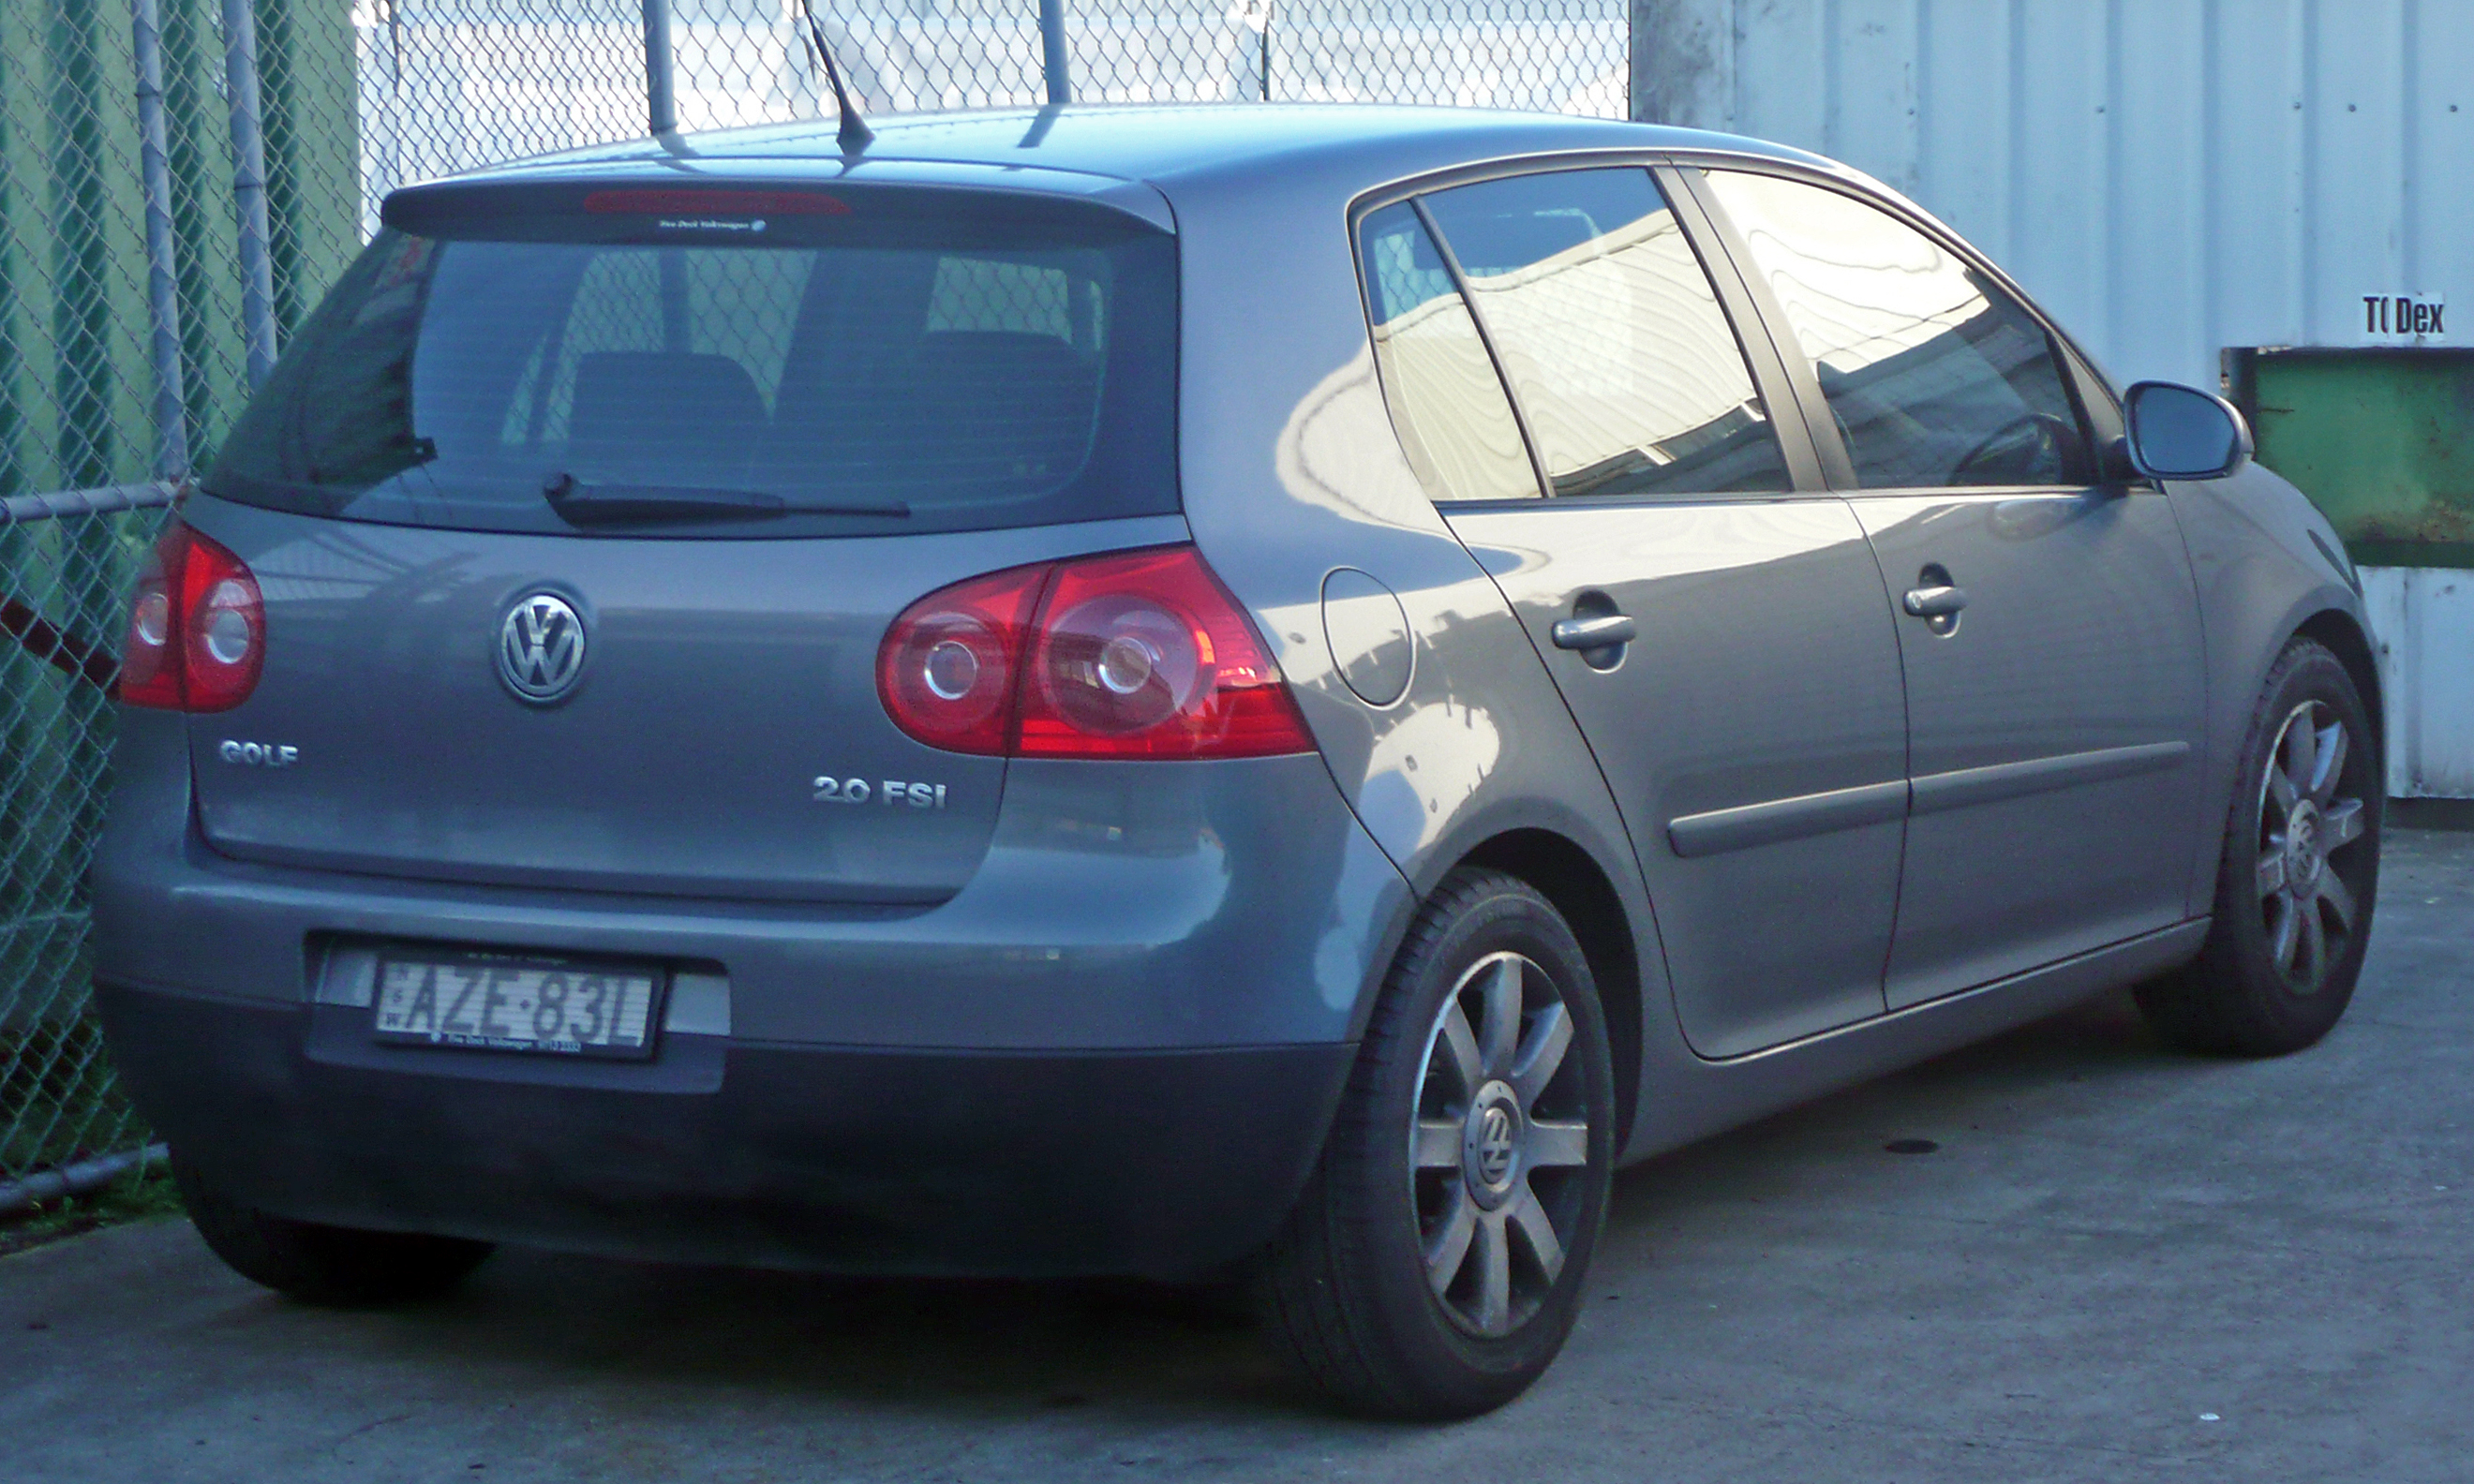 datei 2006 volkswagen golf 1k sportline 2 0 fsi 5 door hatchback 2010 06 13 jpg wikipedia. Black Bedroom Furniture Sets. Home Design Ideas